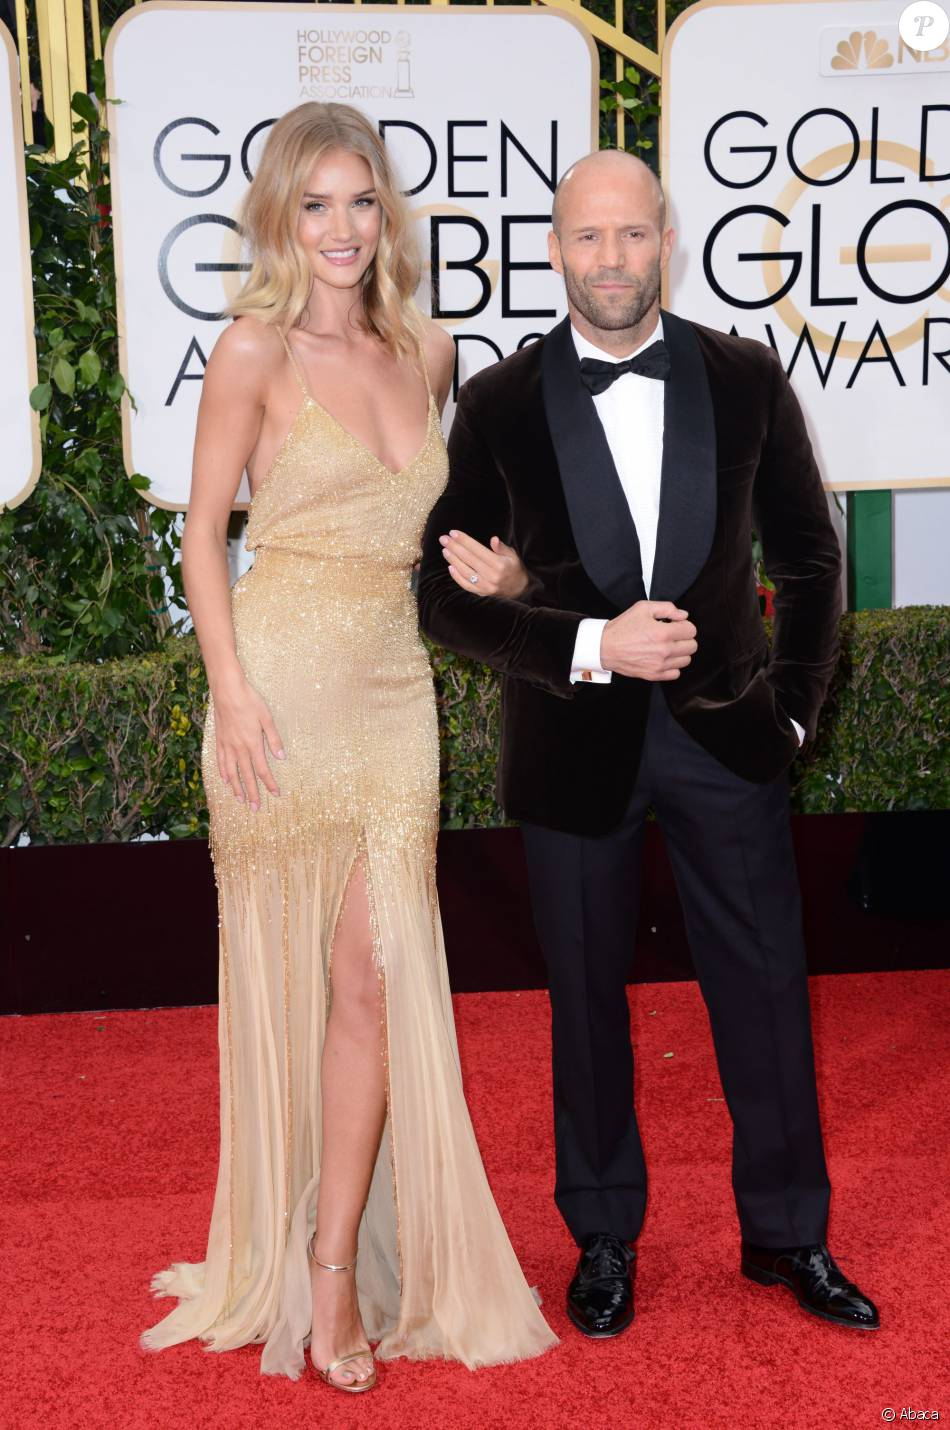 Rosie Huntington-Whiteley and Jason Statham attend the 73rd Annual Golden Globe Awards held at the Beverly Hilton Hotel in Los Angeles, CA, USA, January 10, 2016. Photo by Lionel Hahn/ABACAPRESS.COM11/01/2016 - Los Angeles